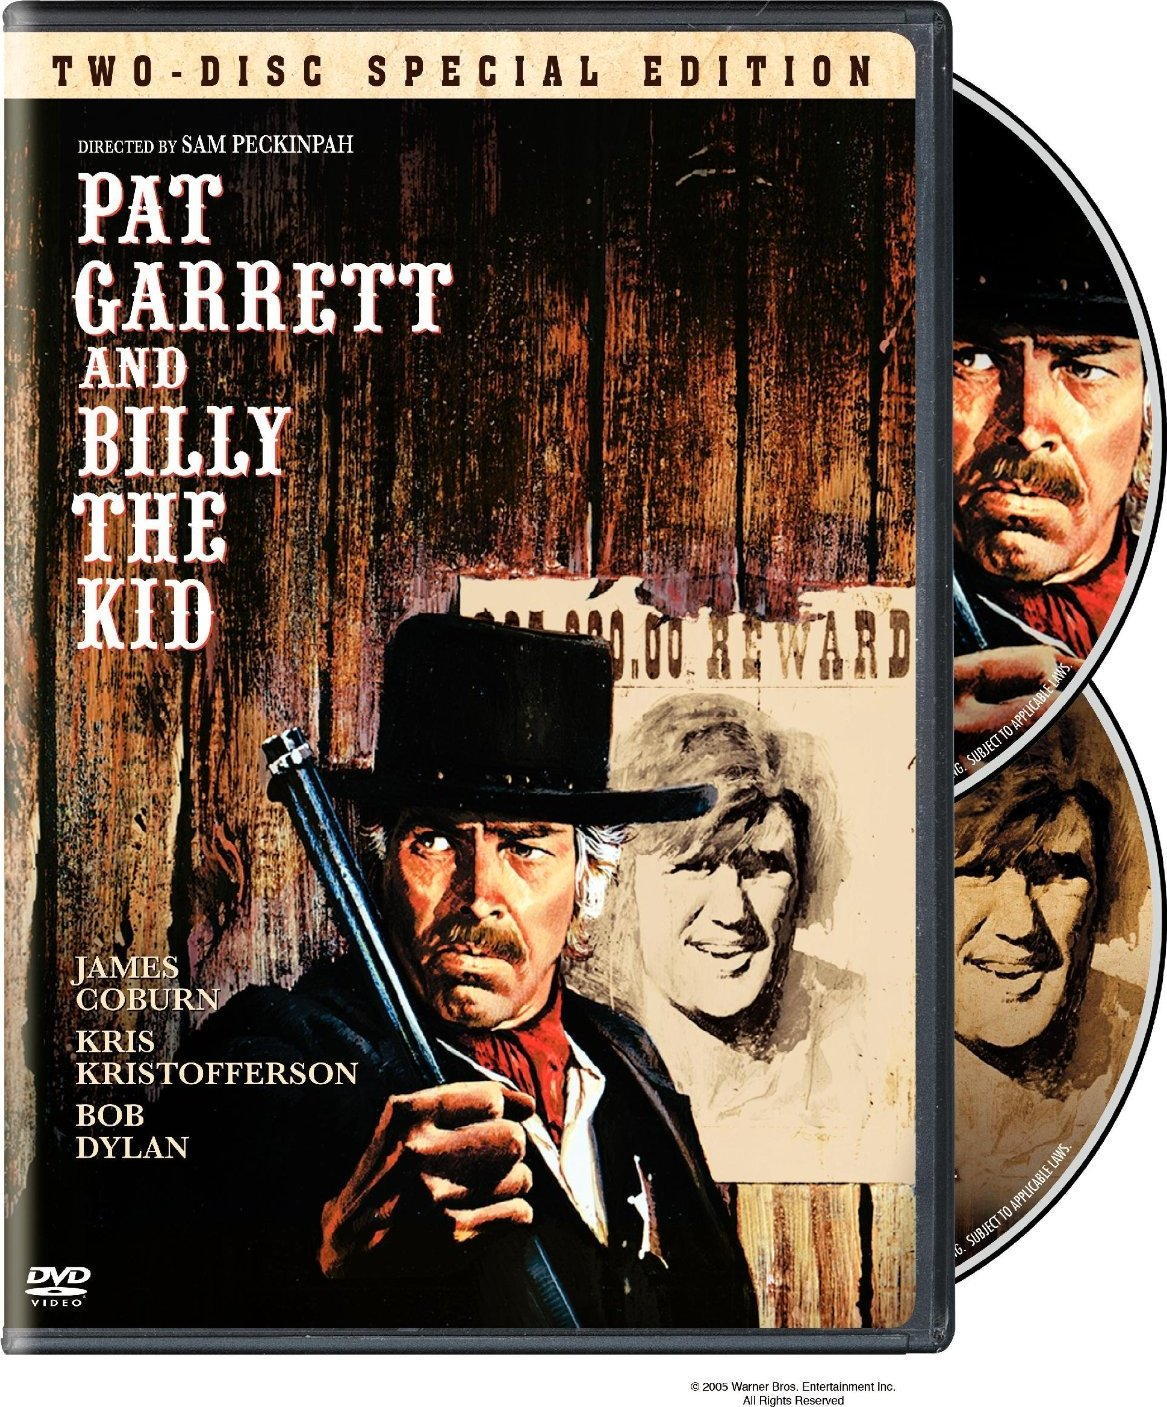 pat garrett et billy le kid test dvd edition two discs special edition warner dvdclassik